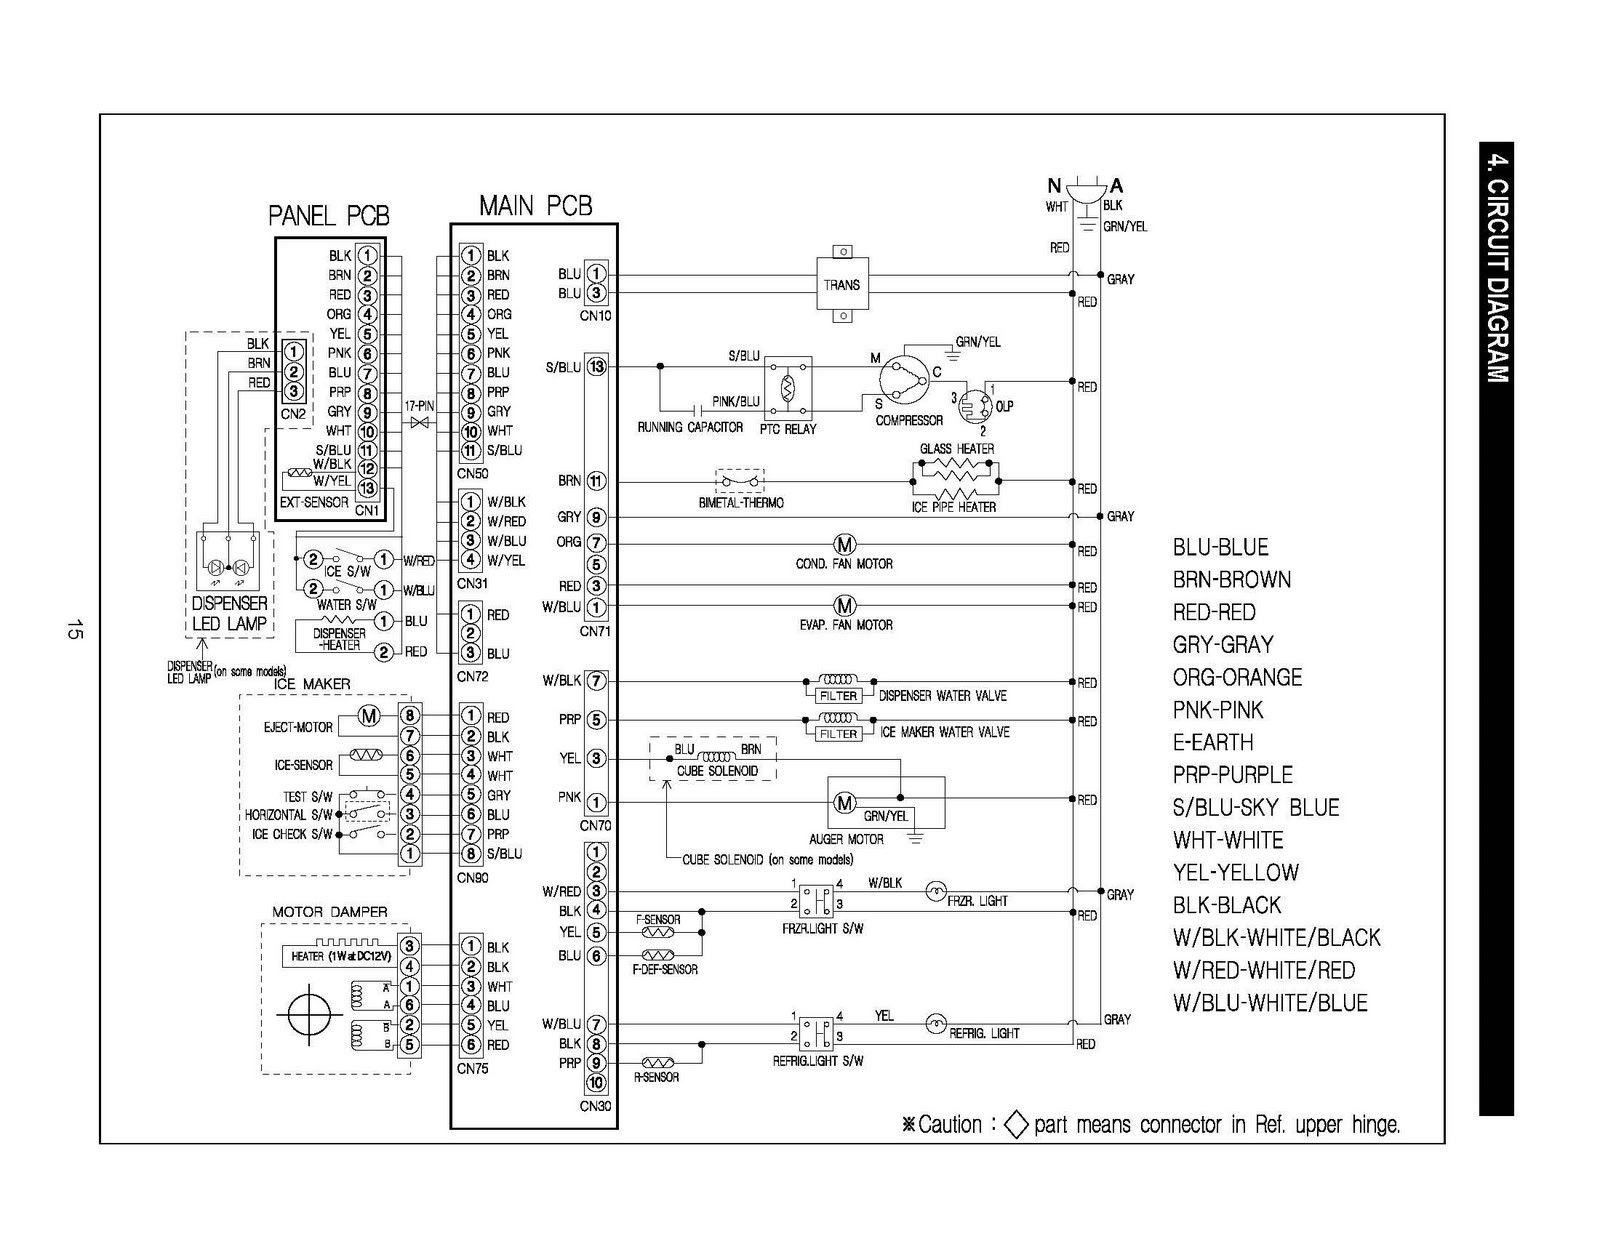 ge refrigerator wiring diagram best of ge monogram wiring diagramge refrigerator wiring diagram best of ge [ 1600 x 1236 Pixel ]